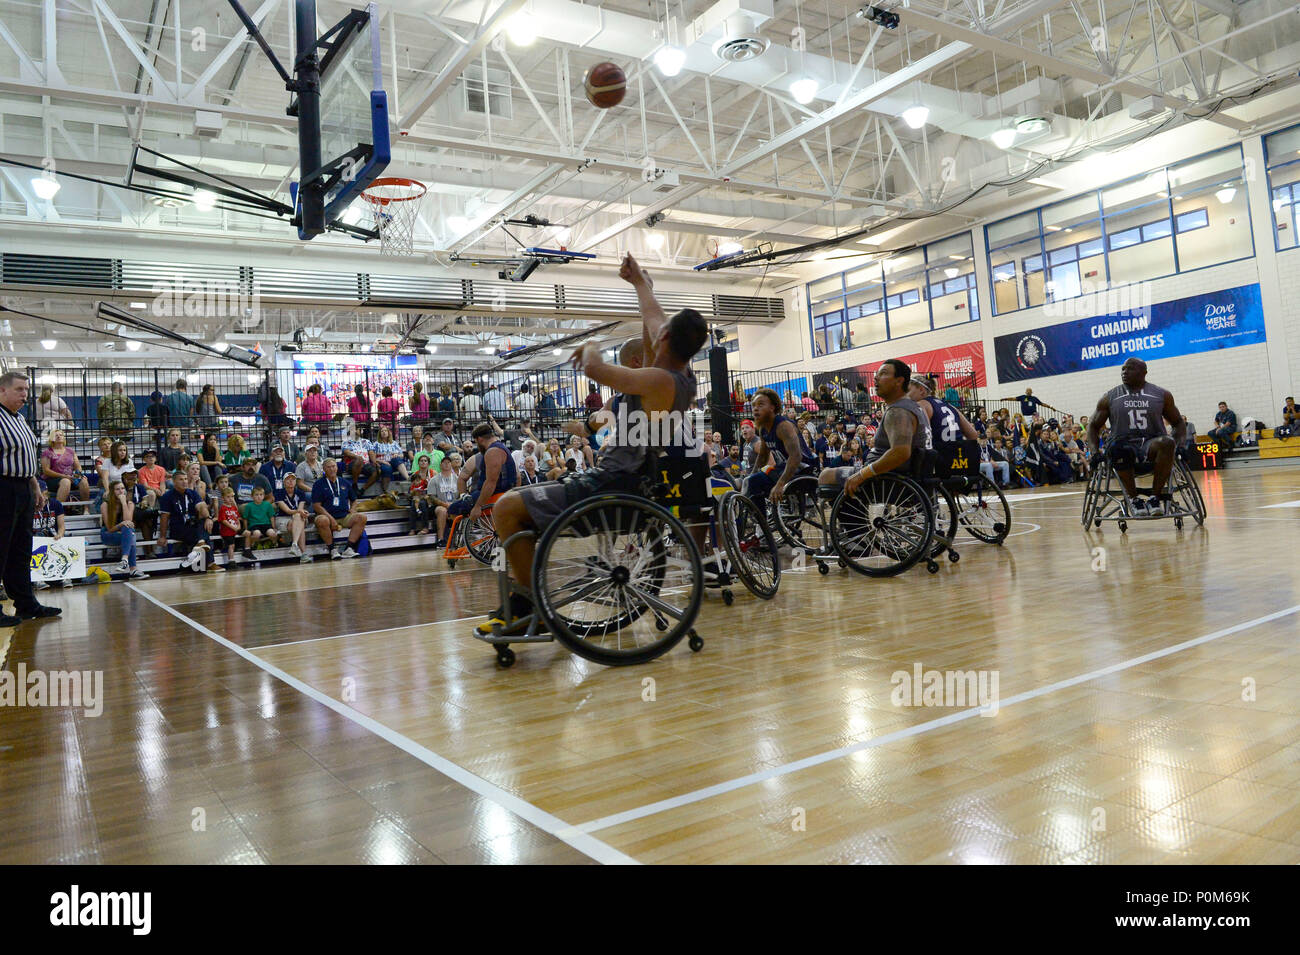 Army Spc. Vairon Caicedo Ocampo from Team SOCOM takes a shot against Navy in the wheelchair basketball game during the 2018 Warrior Games held at the Air Force Academy in Colorado Springs June 4, 2018.  Created in 2010, the DoD Warrior Games introduce wounded, ill and injured service members and veterans to Paralympic-style sports. Warrior Games showcases the resilient spirit of today's wounded, ill or injured service members from all branches of the military. These athletes have overcome significant physical and behavioral injuries and prove that life can continue after becoming wounded, ill  Stock Photo